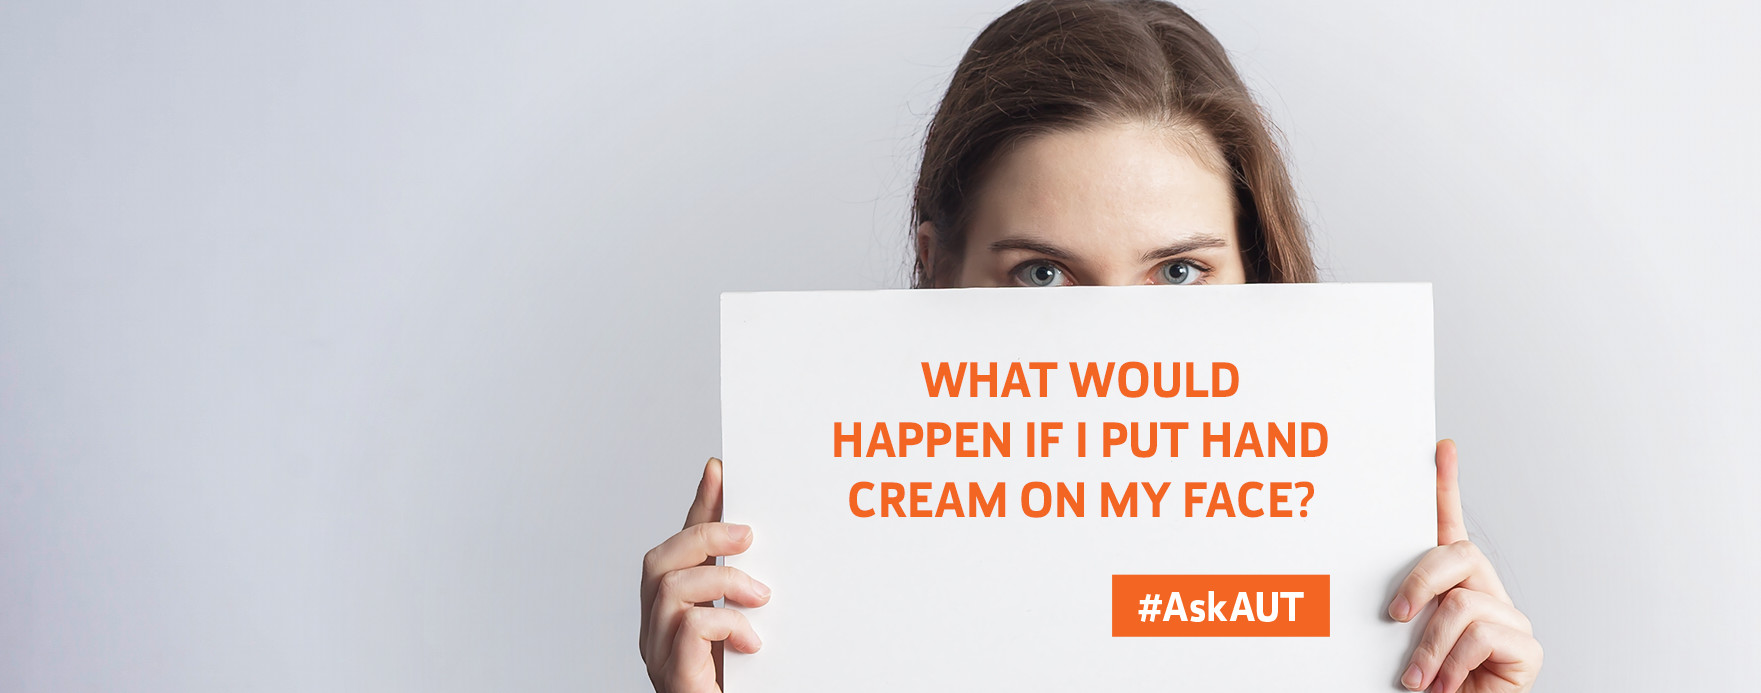 What would happen if I put Hand Cream on my Face?